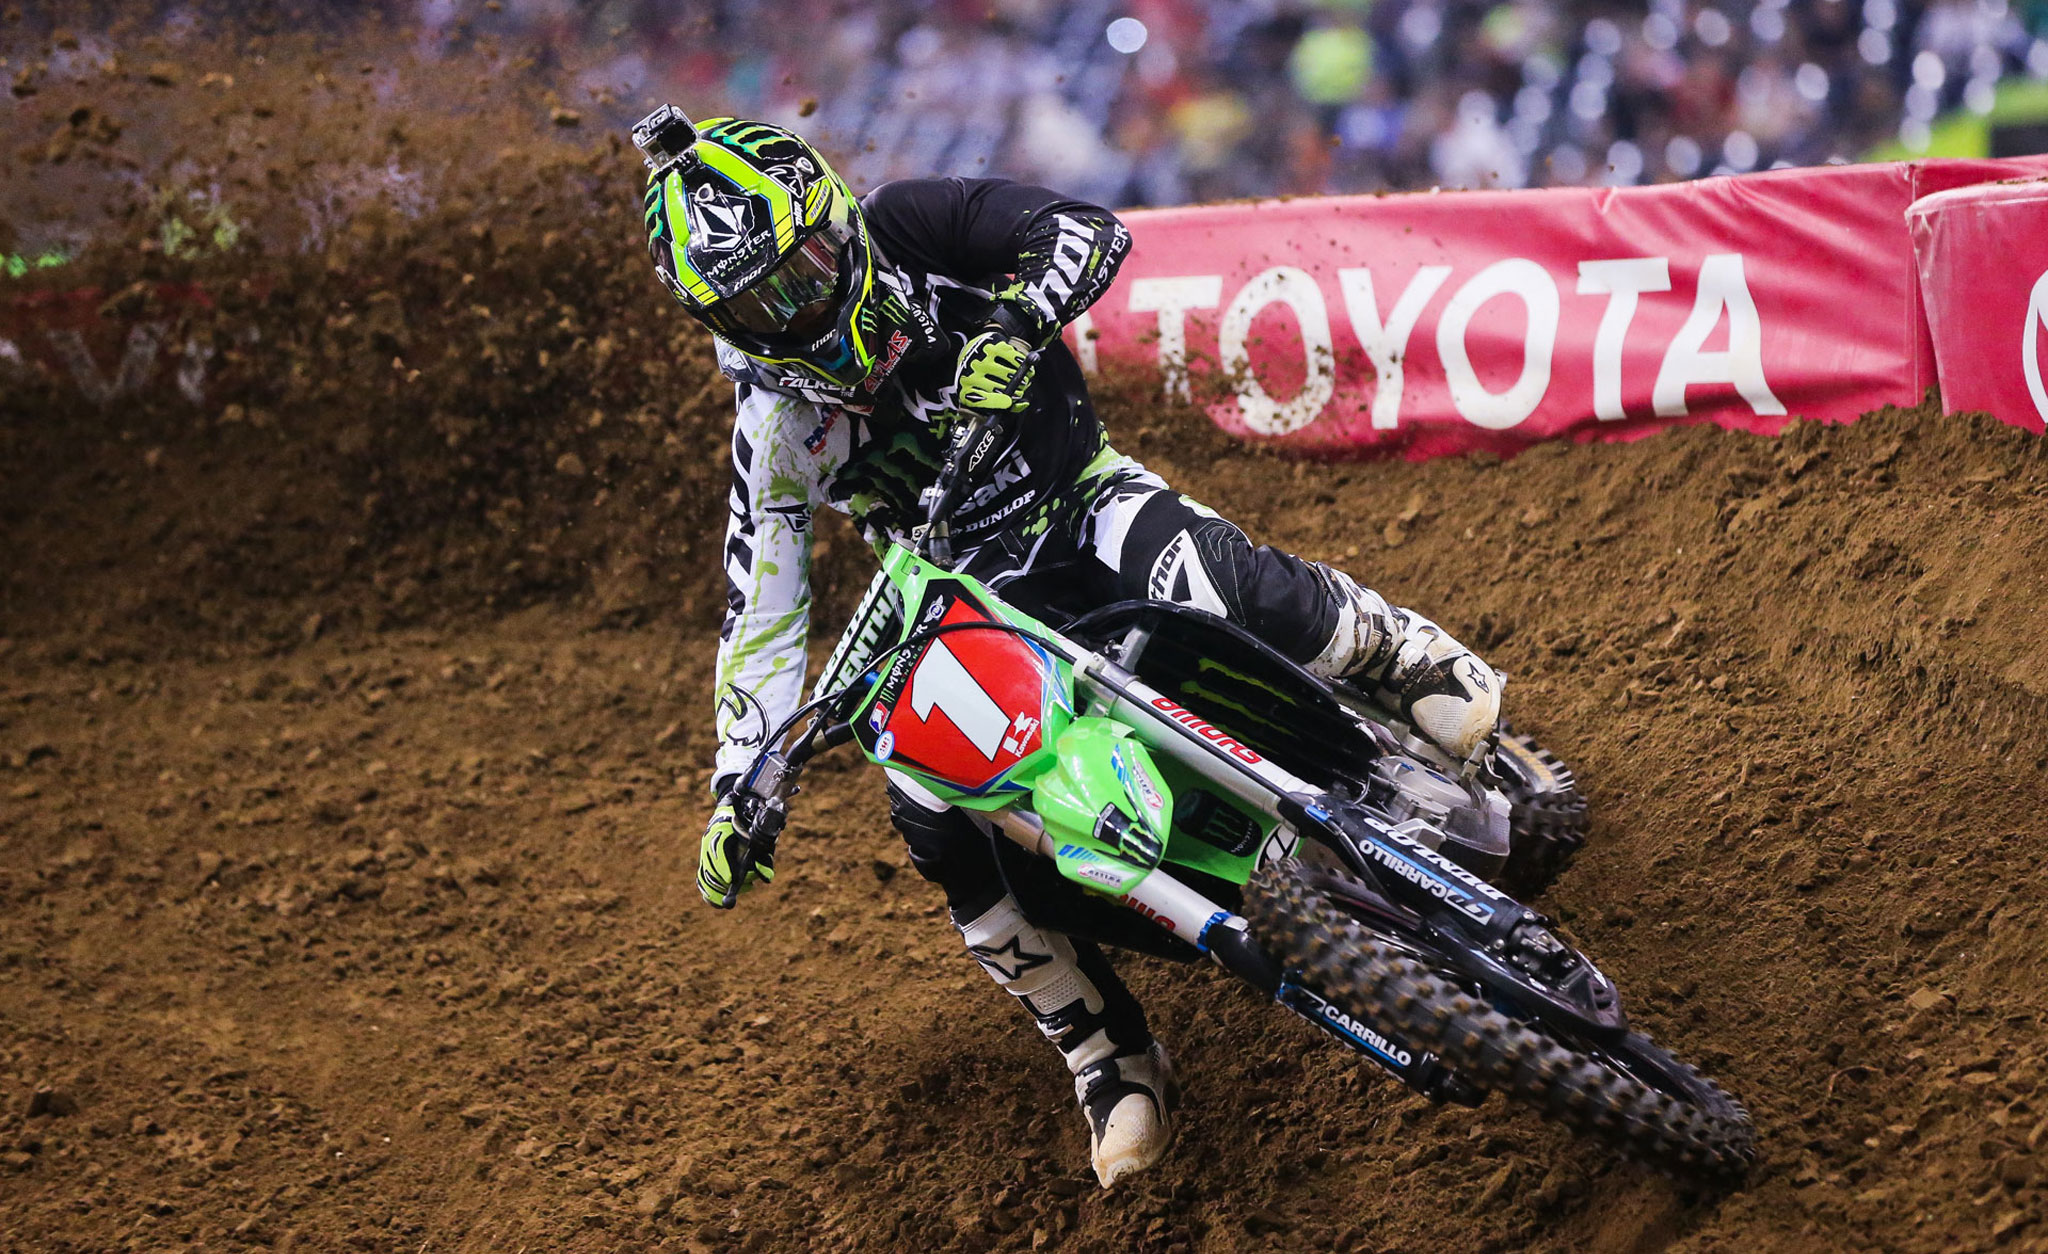 Ryan Villopoto on his way to his eighth Supercross victory of this season.